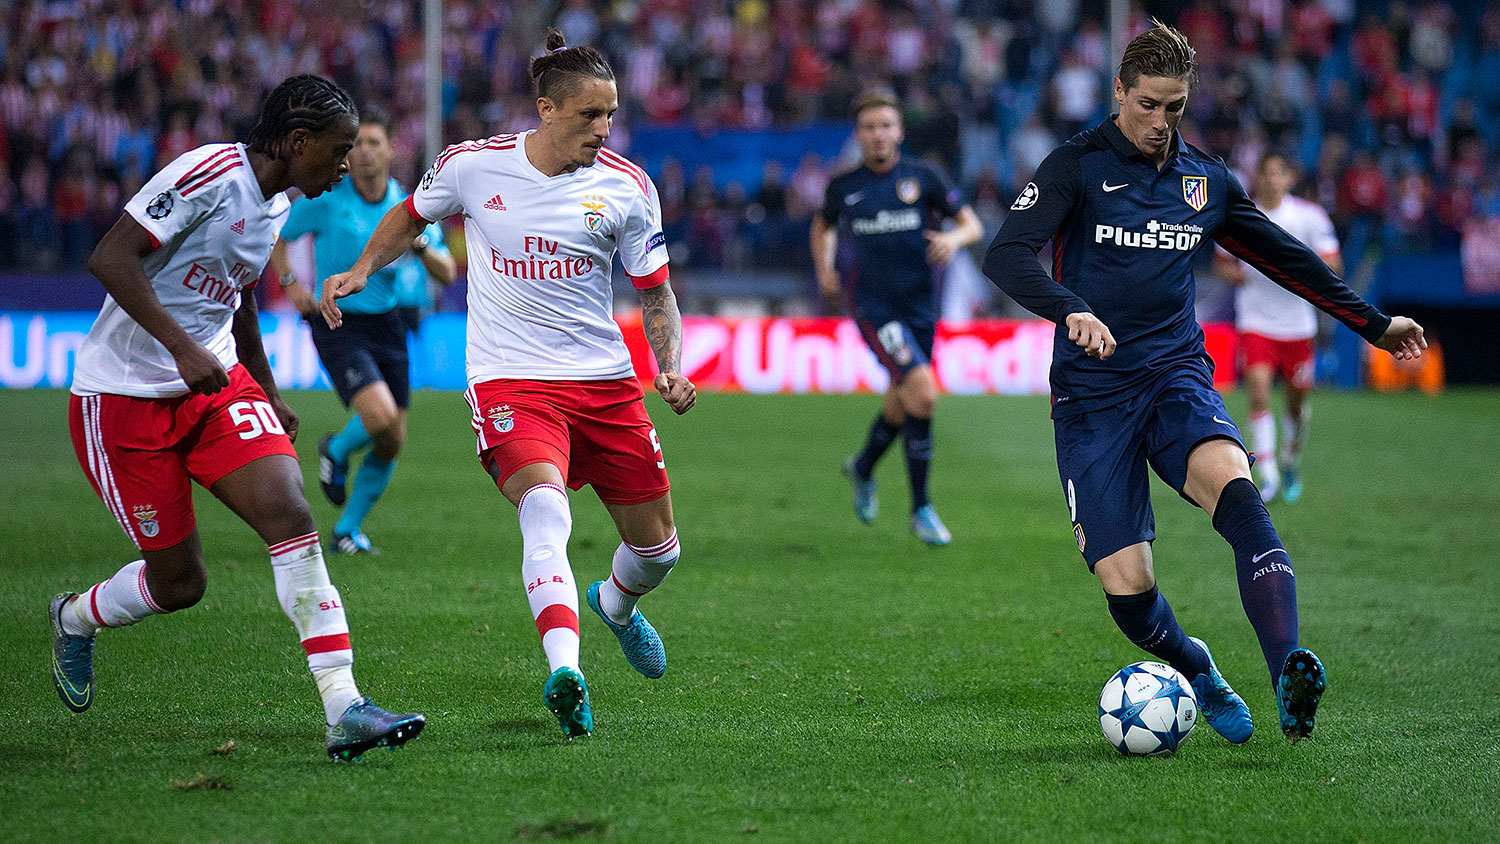 Fernando Torres, presumably about to trip over the ball.